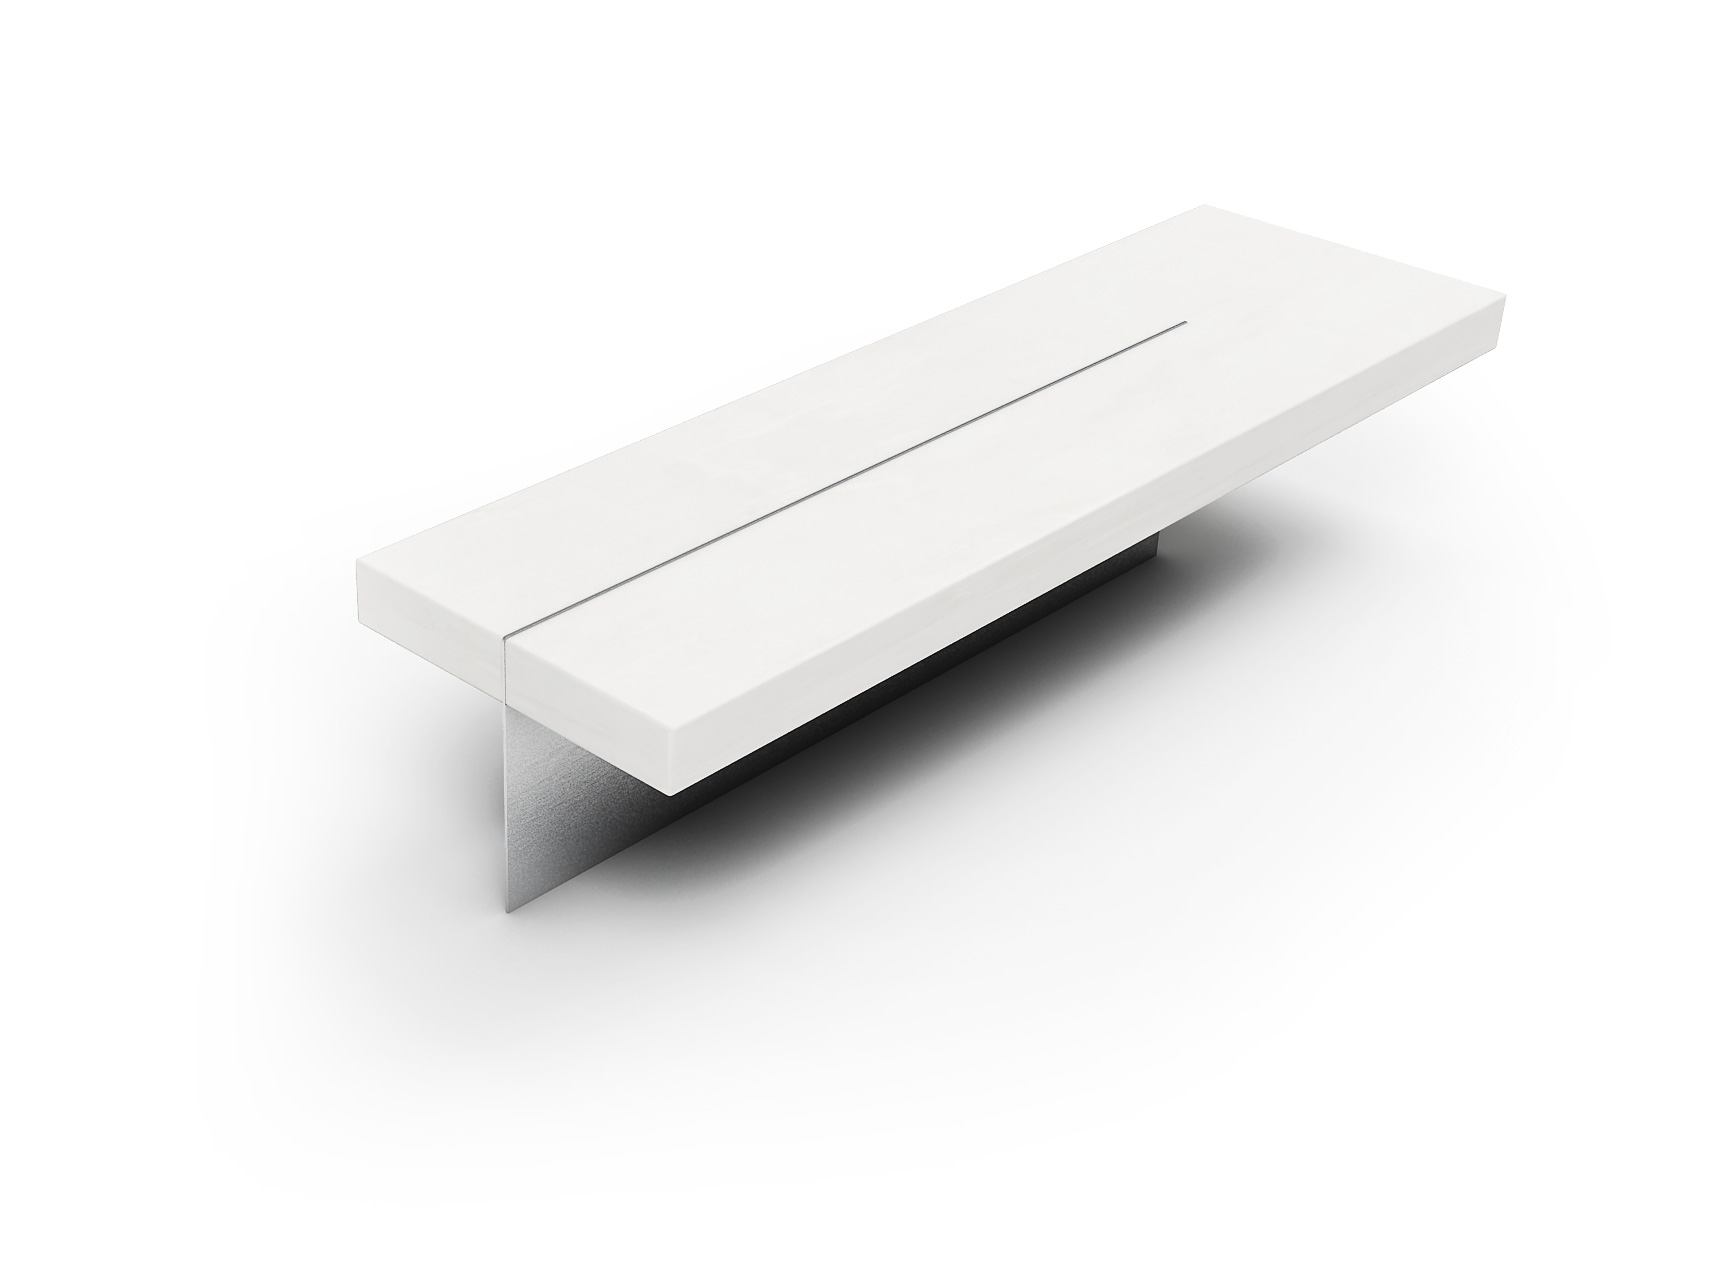 TILA bench by Stephane Chapelet for MyWay